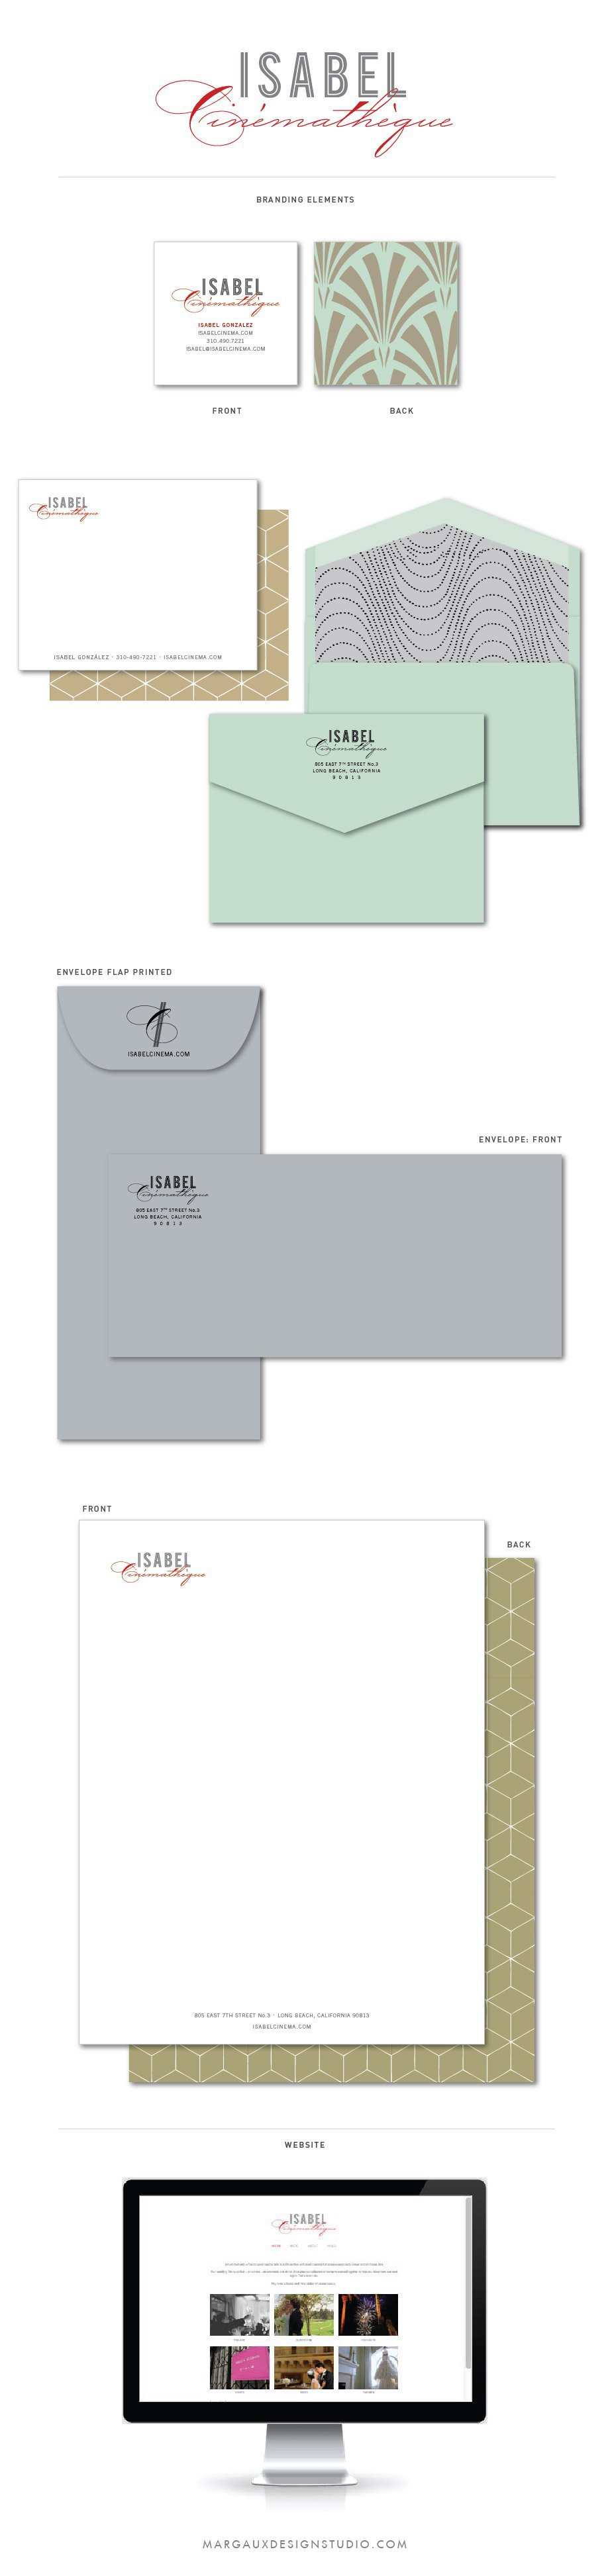 Wedding professional branding and identity with marketing collateral wedding professional branding and identity with marketing collateral note cards envelopes business cards double sided letterhead and website design reheart Images